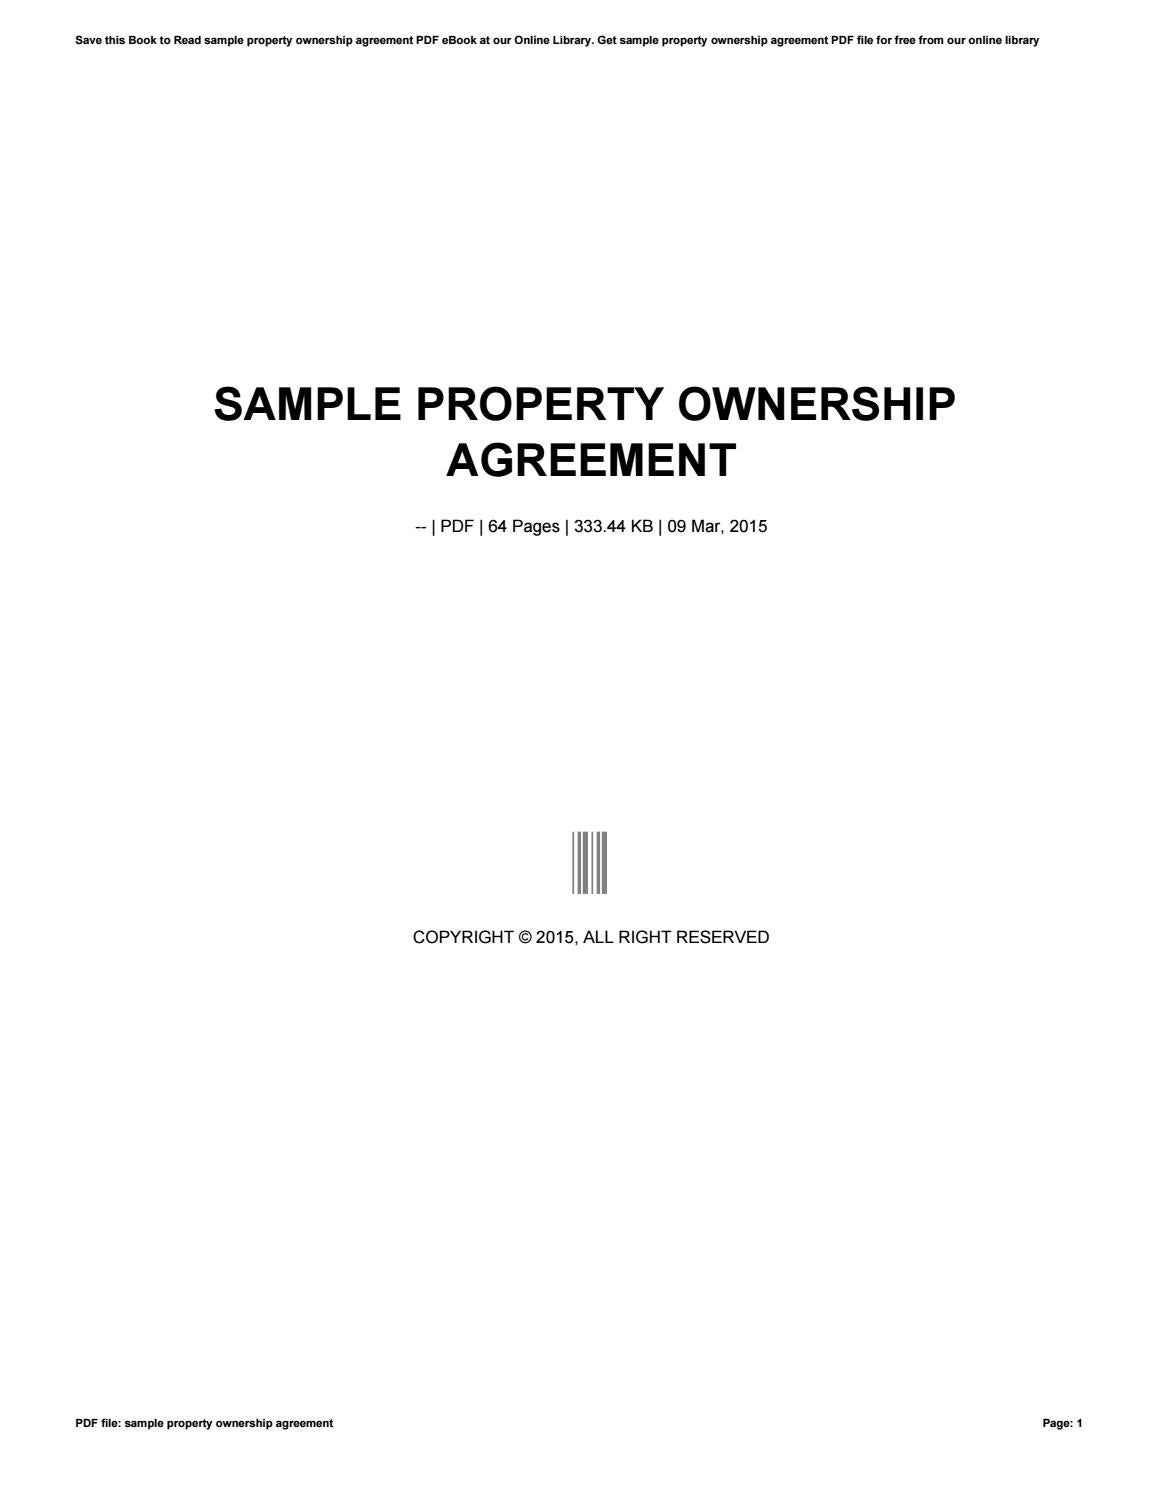 Sample Property Ownership Agreement By Ziyap364 Issuu